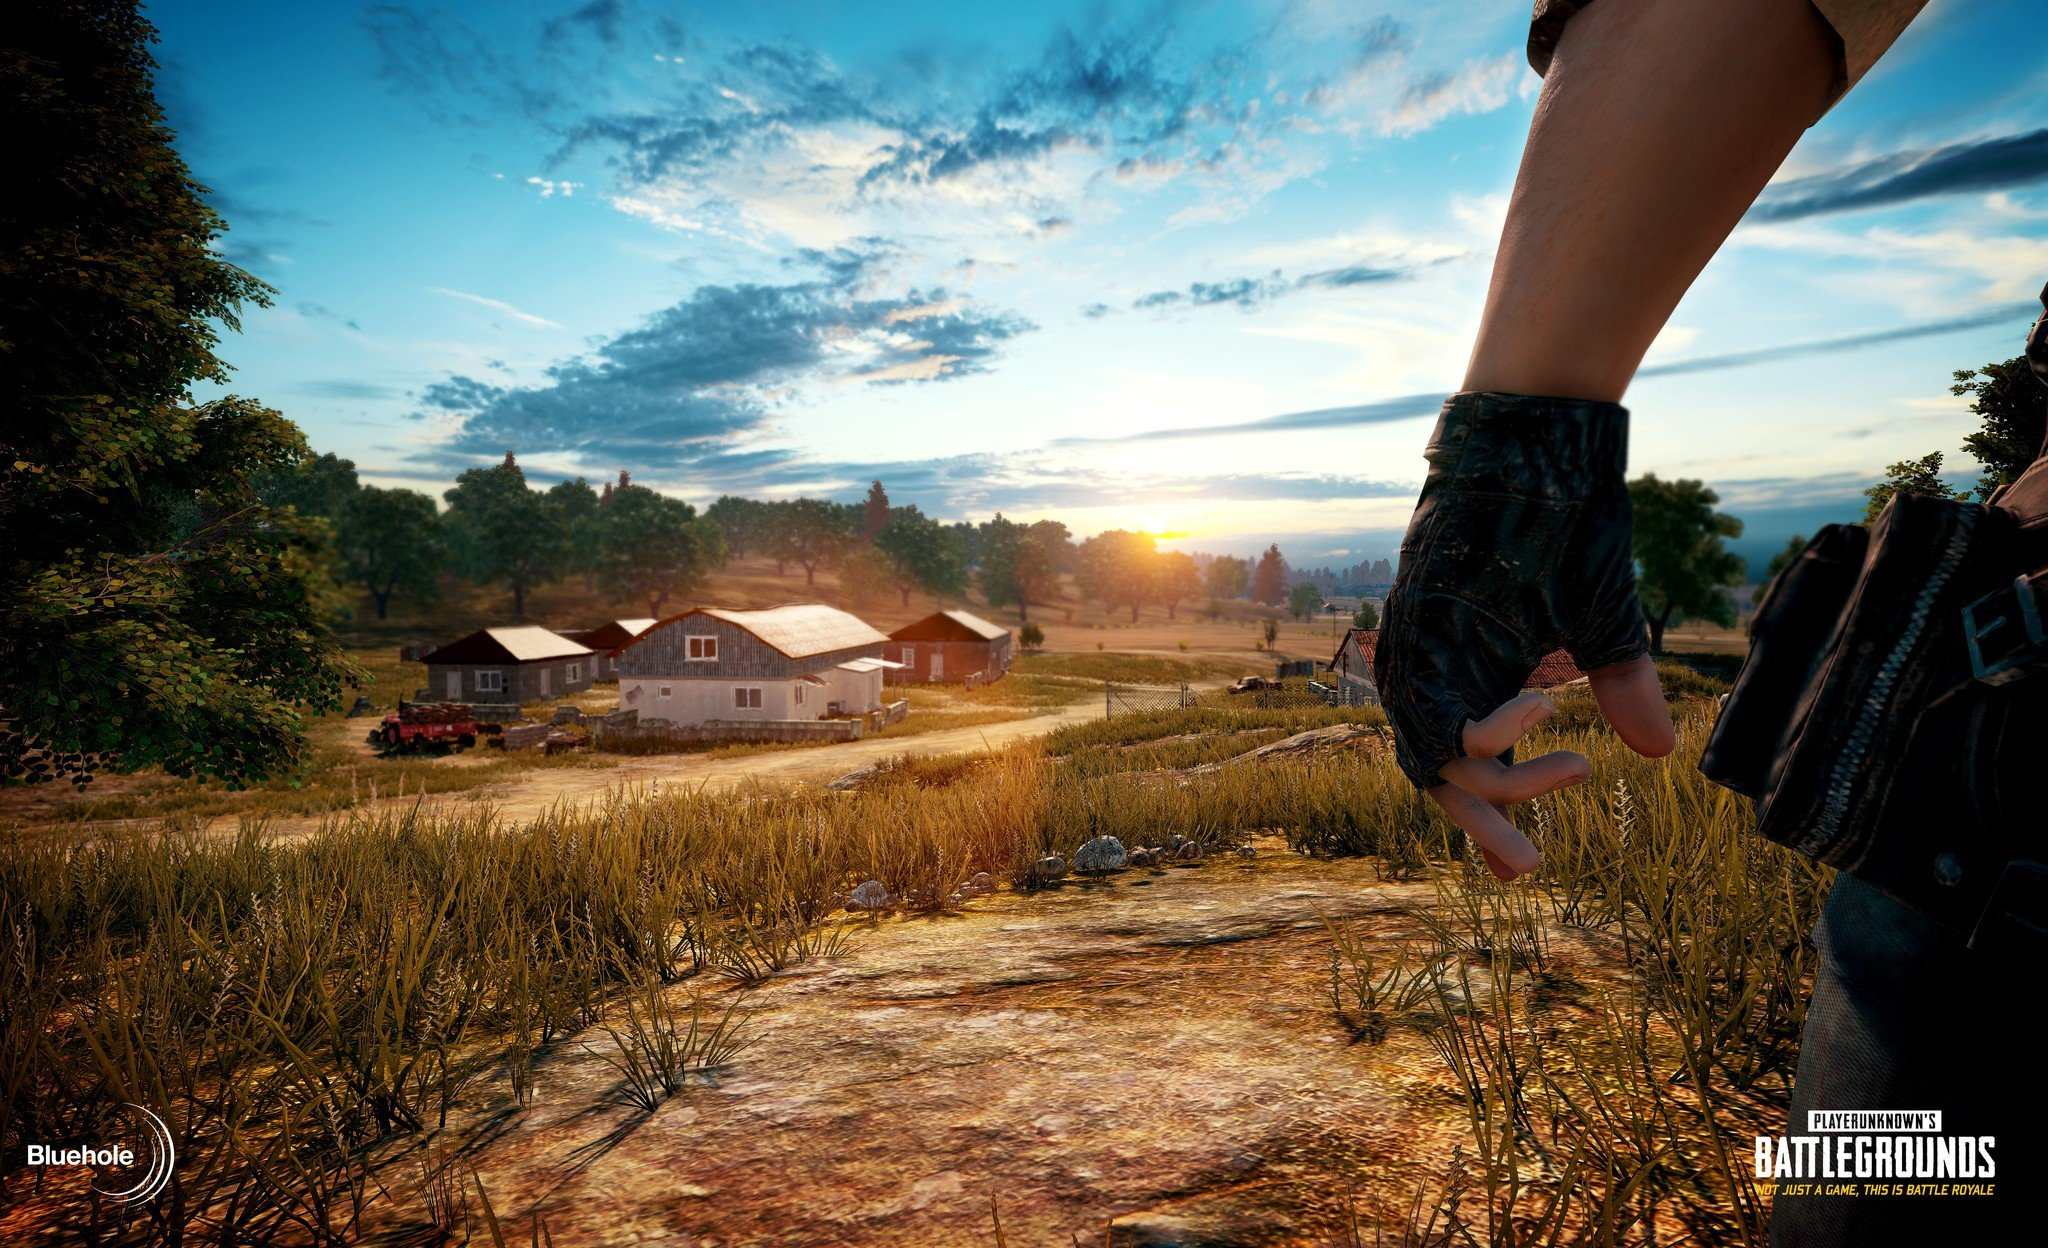 What To Expect From PlayerUnknowns Battlegrounds PUBG